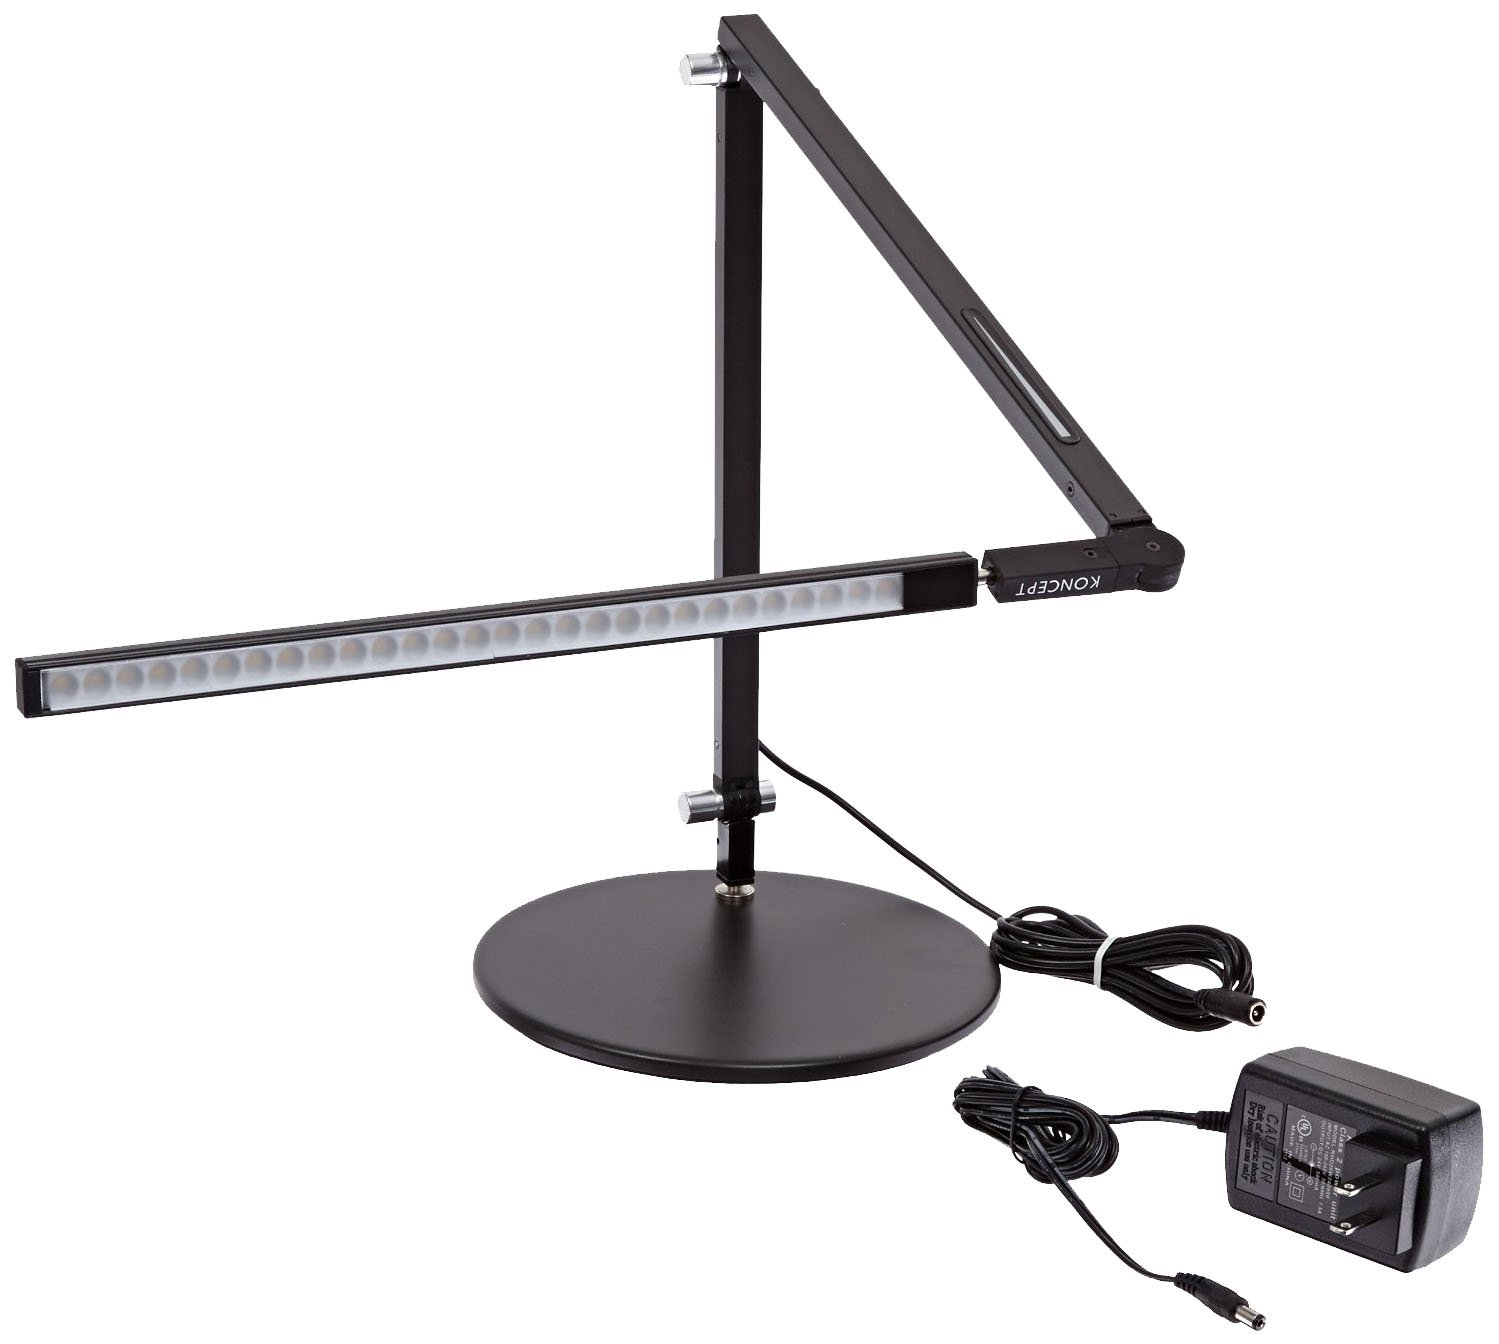 Koncept AR3000-W-MBK-DSK Z-Bar LED Desk Lamp, Warm Light, Metallic Black by Koncept